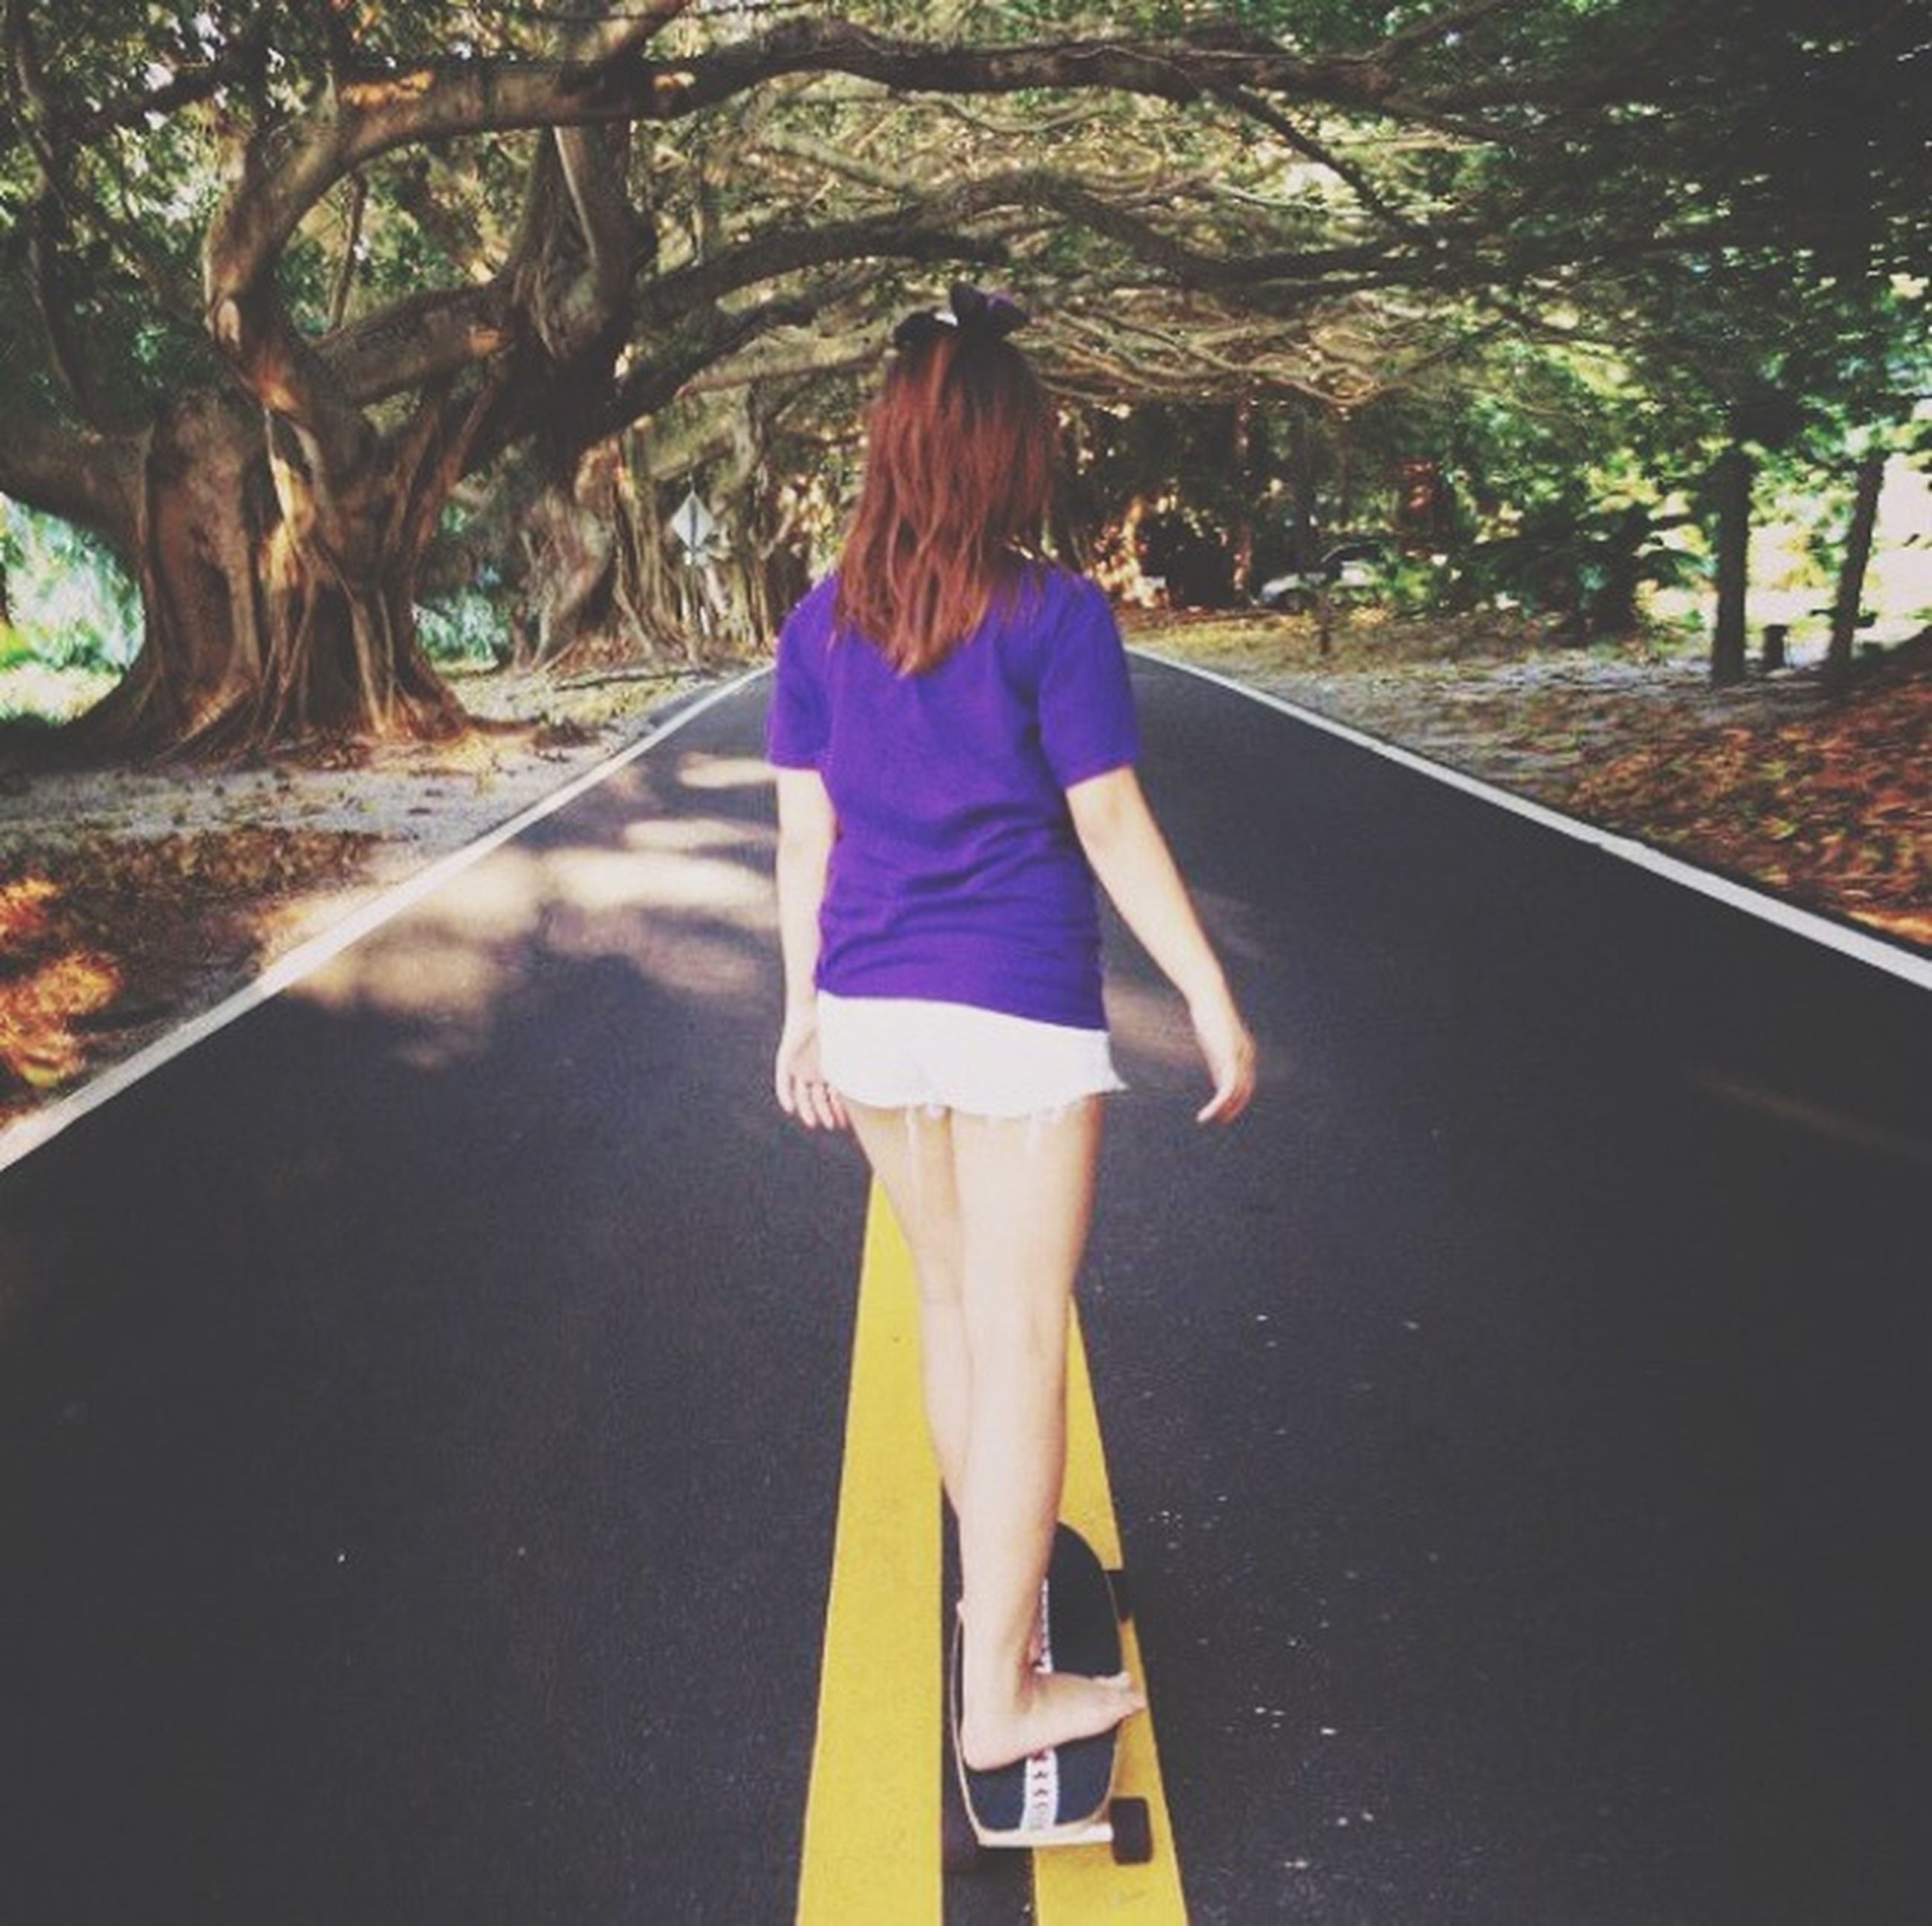 lifestyles, tree, casual clothing, leisure activity, standing, full length, rear view, road, the way forward, person, young adult, long hair, young women, transportation, walking, day, front view, outdoors